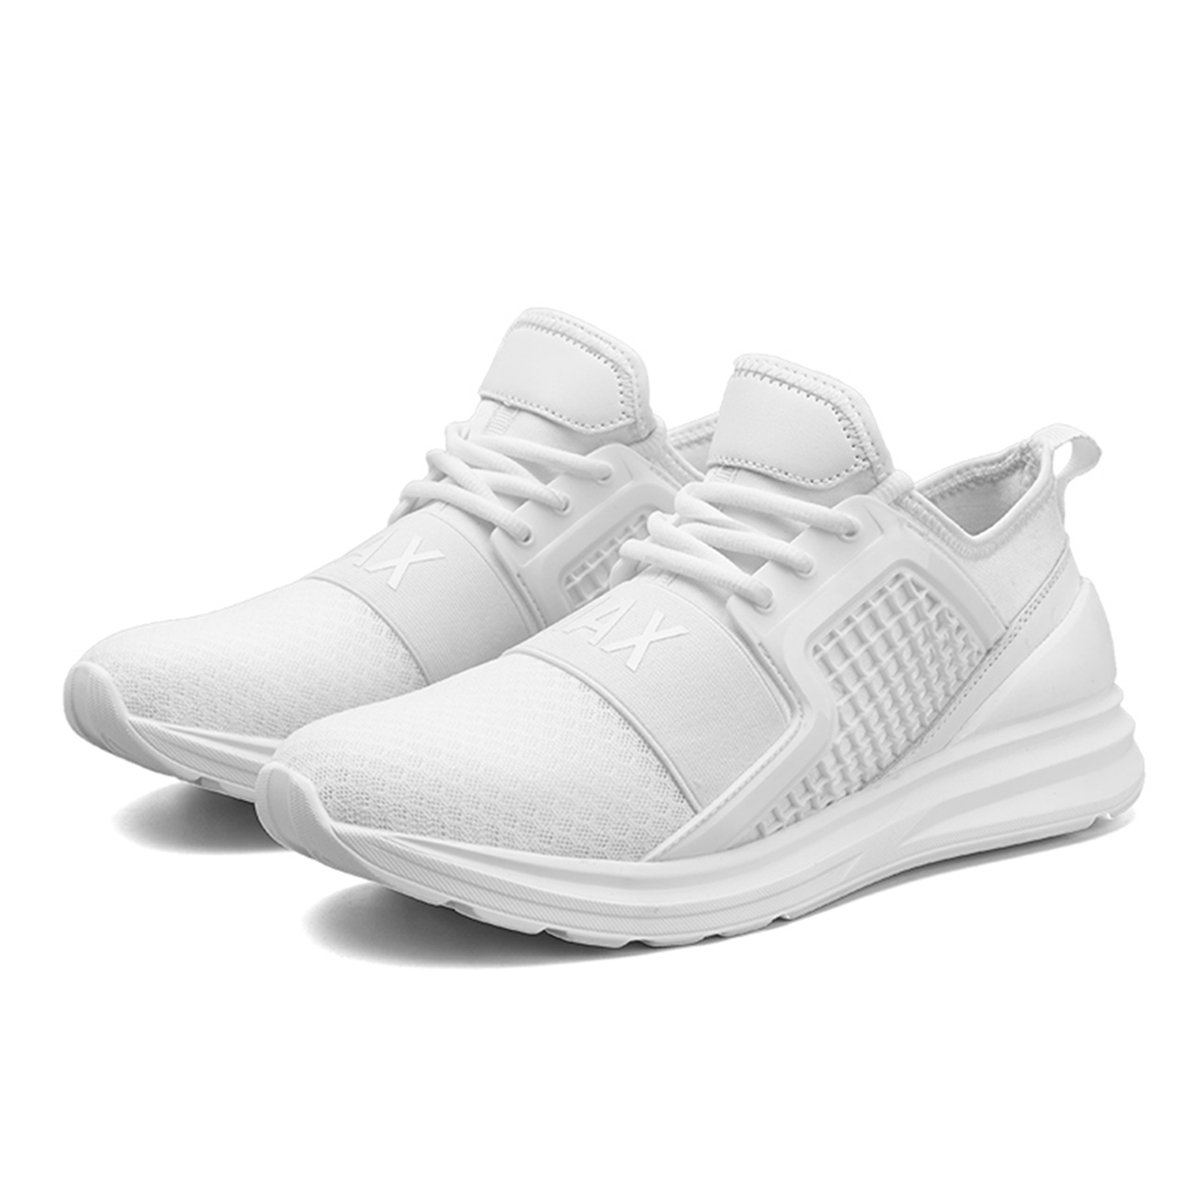 Resonda Mens Running Shoes Casual Fashion Sneakers Lightweight Athletic Walking Sport Shoes for Men B07FF3LXNW 8 B(M) US|02-white